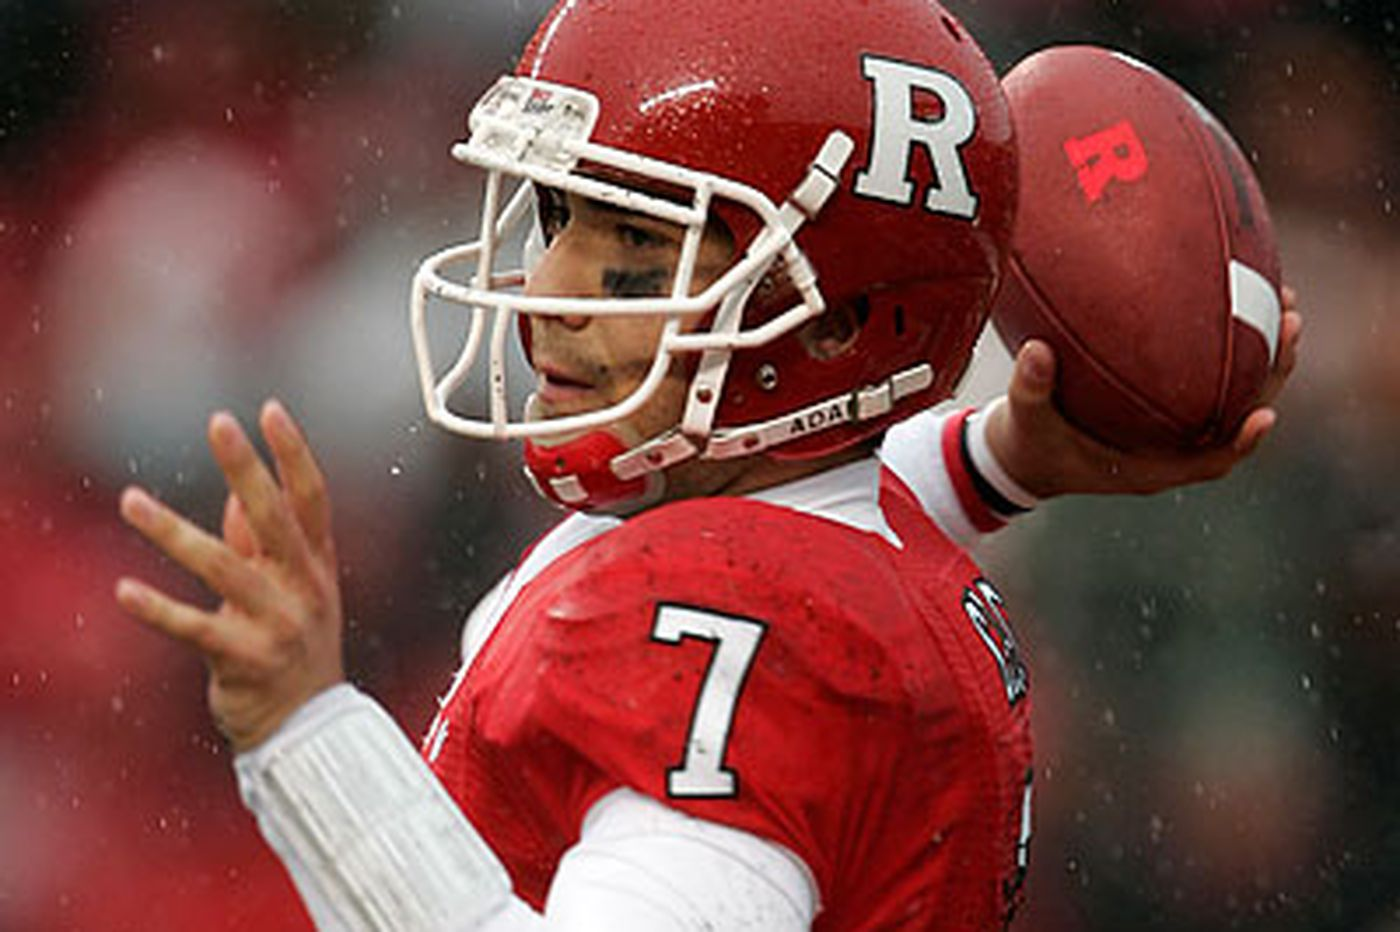 Big things expected from Rutgers quarterback Savage